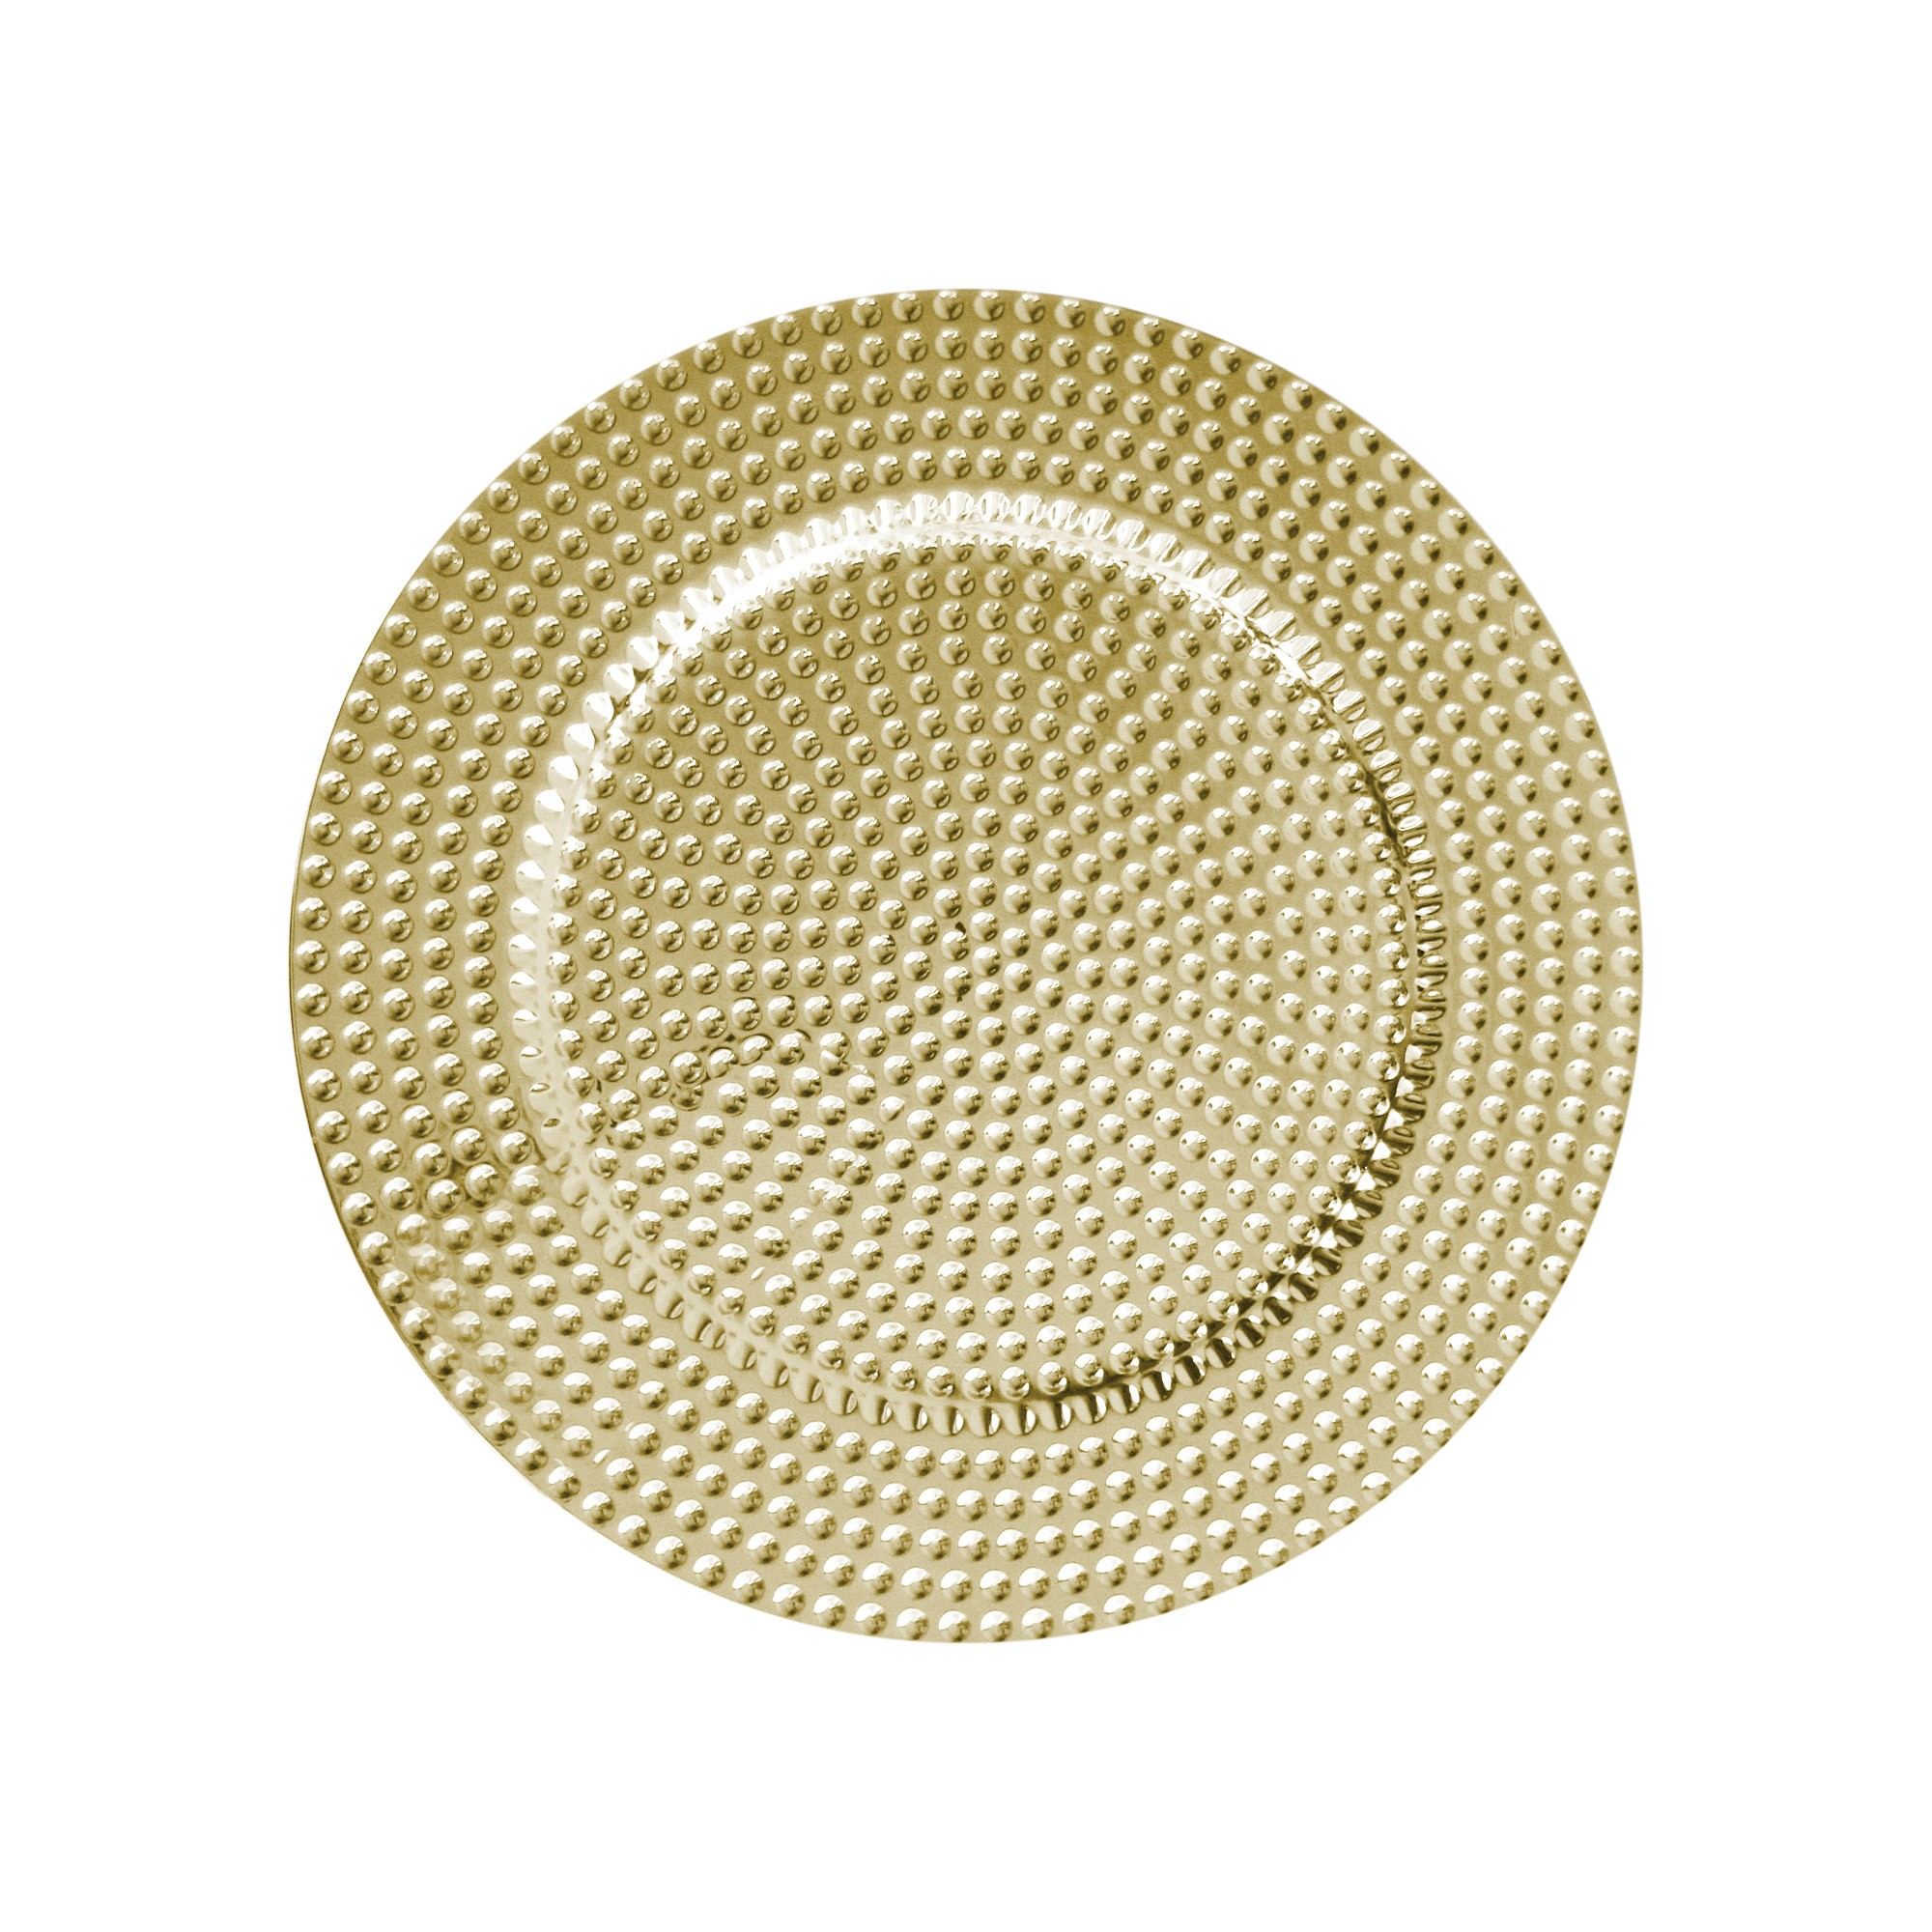 Beaded Gold Charger Plates Melamine